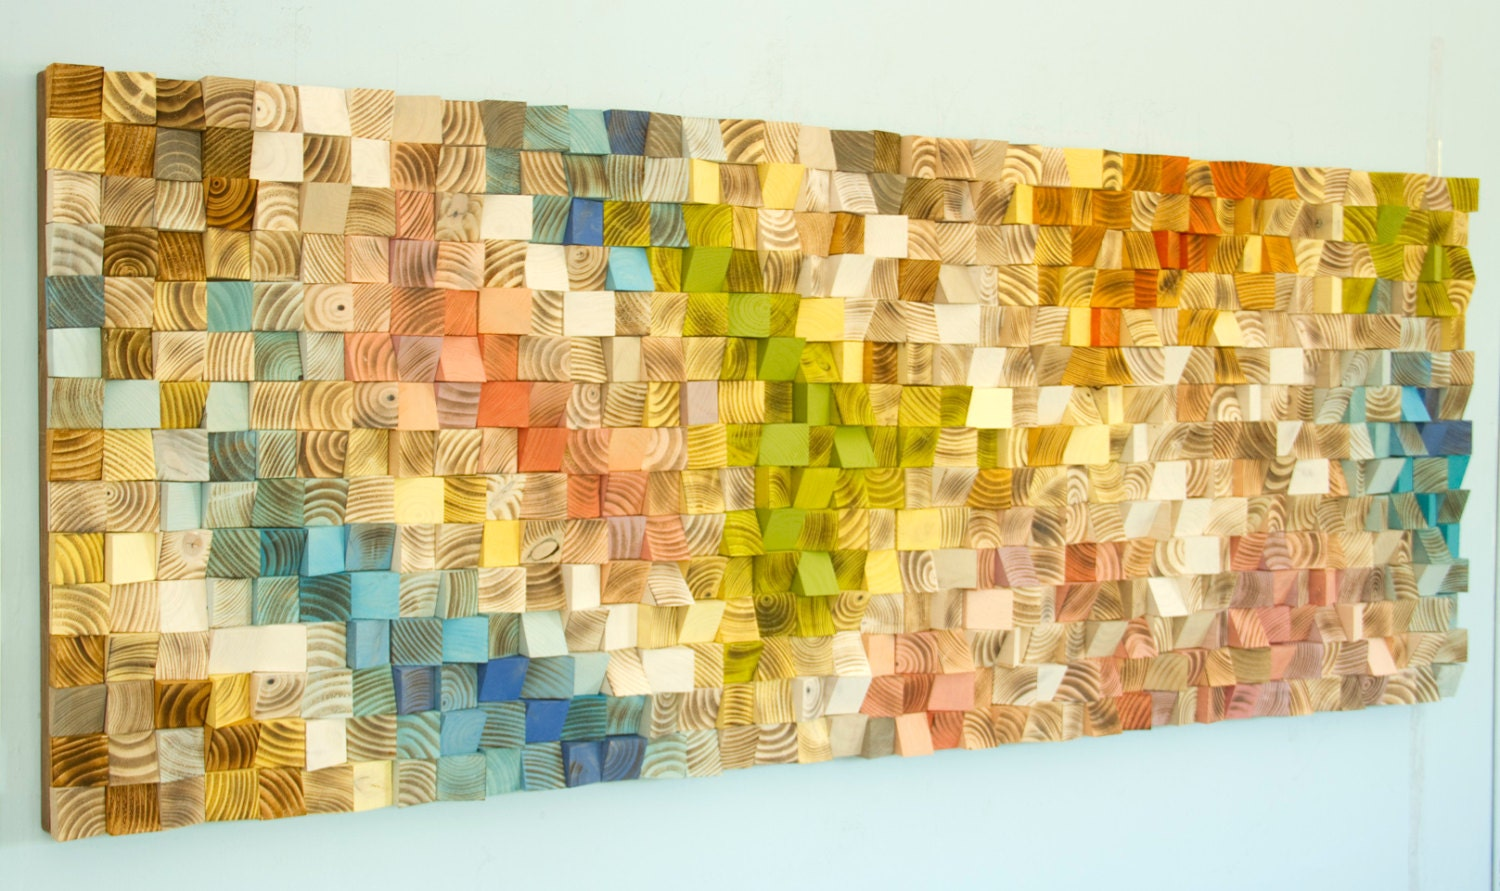 Large Wood Art, wood wall art, mosaic, modern wood sculpture, wooden ...